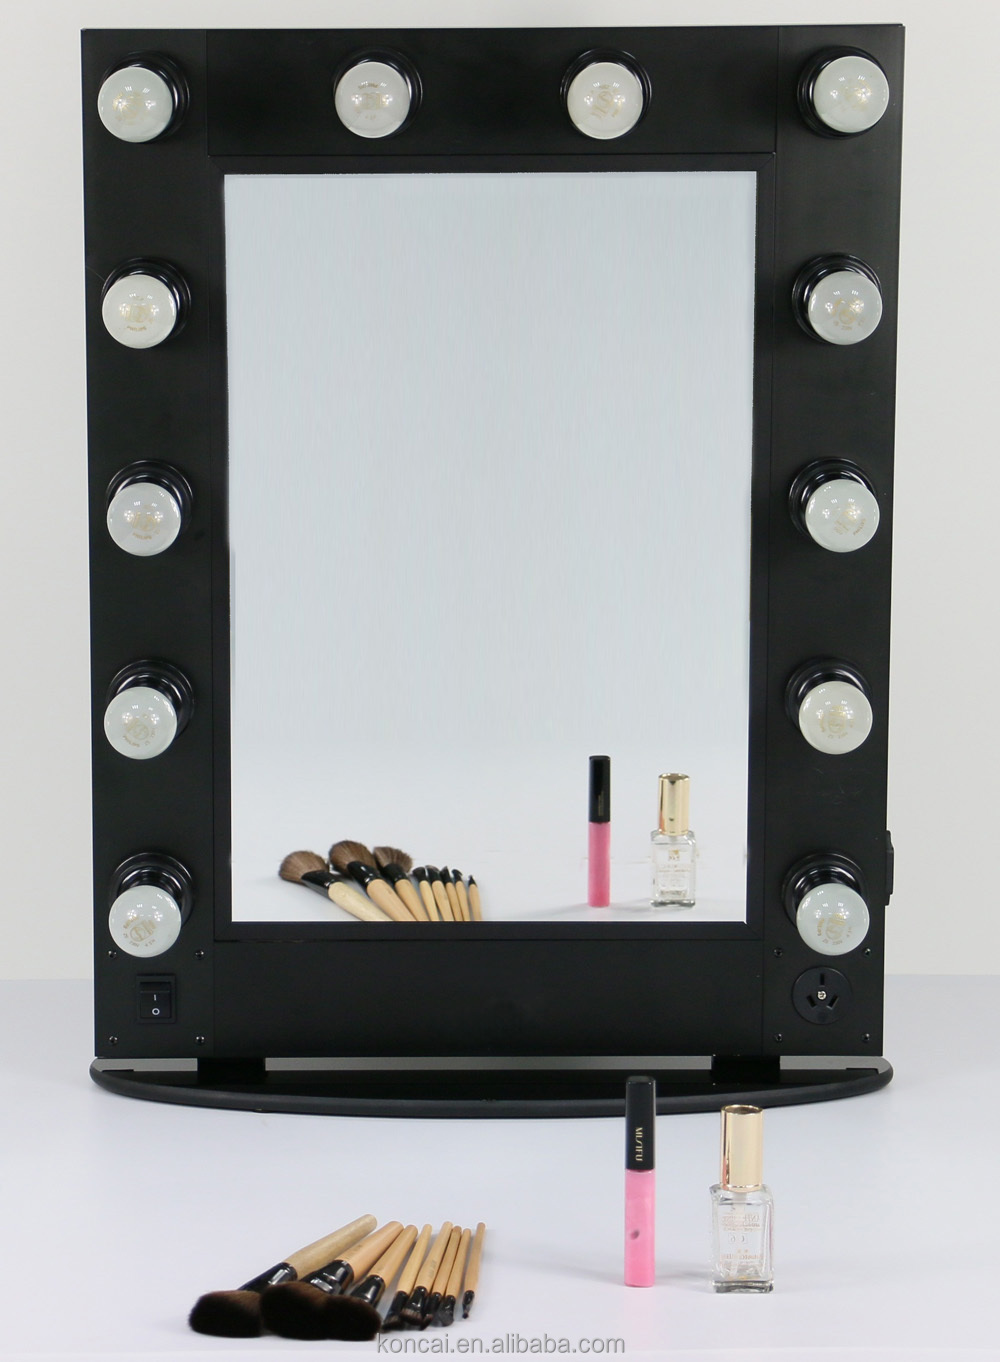 led light cosmetic mirror led salon mirror makeup mirror light. Black Bedroom Furniture Sets. Home Design Ideas